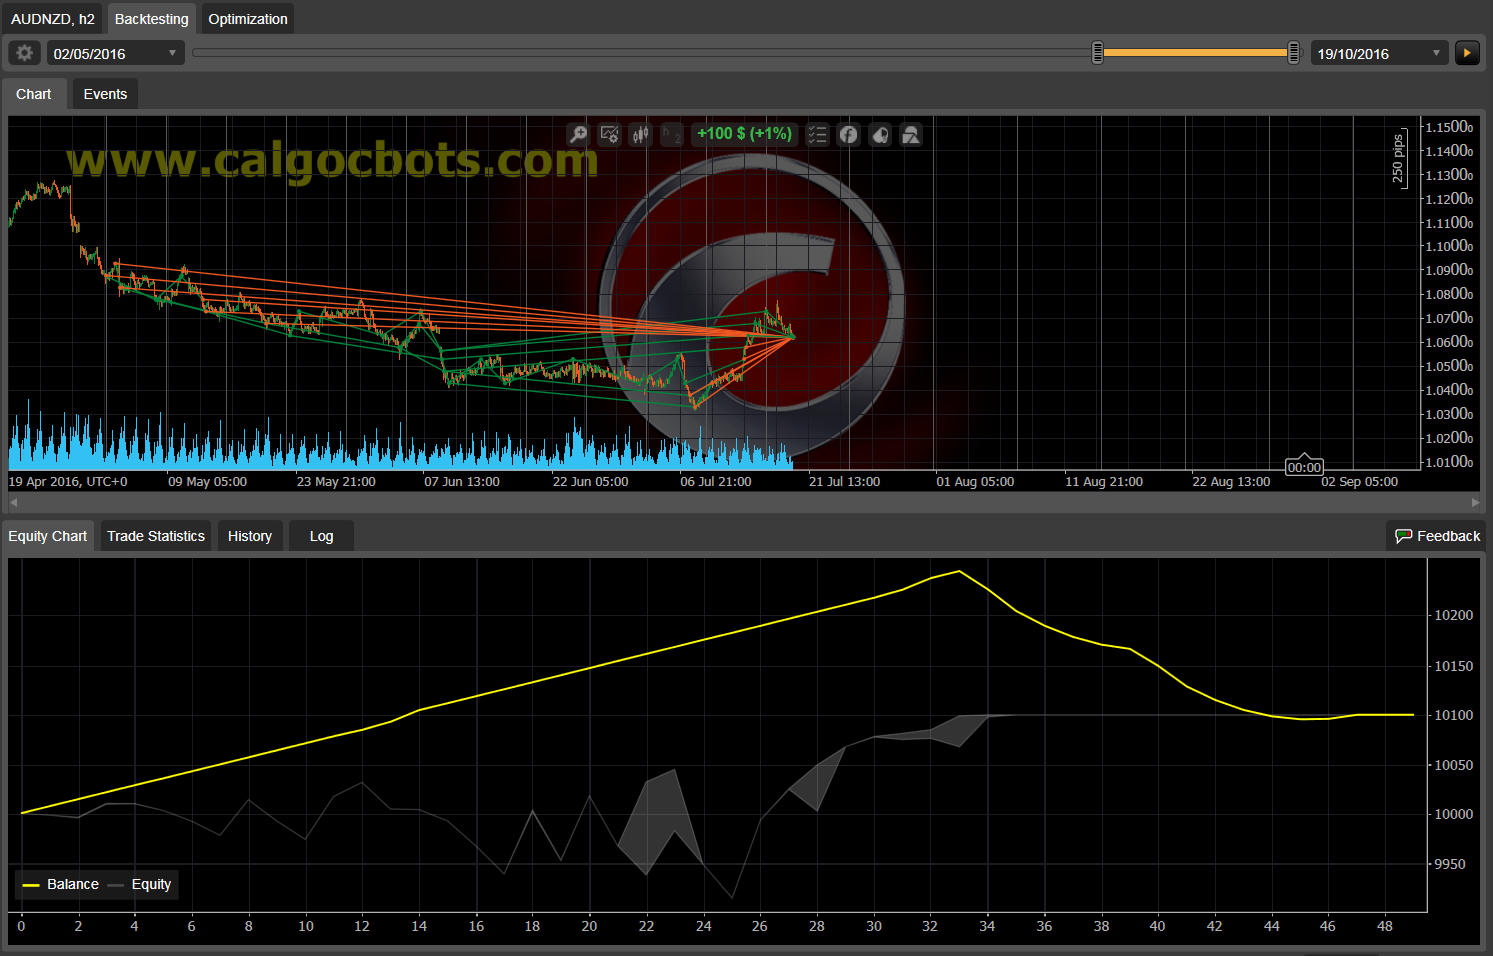 Dual Grid Hedge AUD NZD 1h cAlgo cBots cTrader 1k 100 50 100 - 10